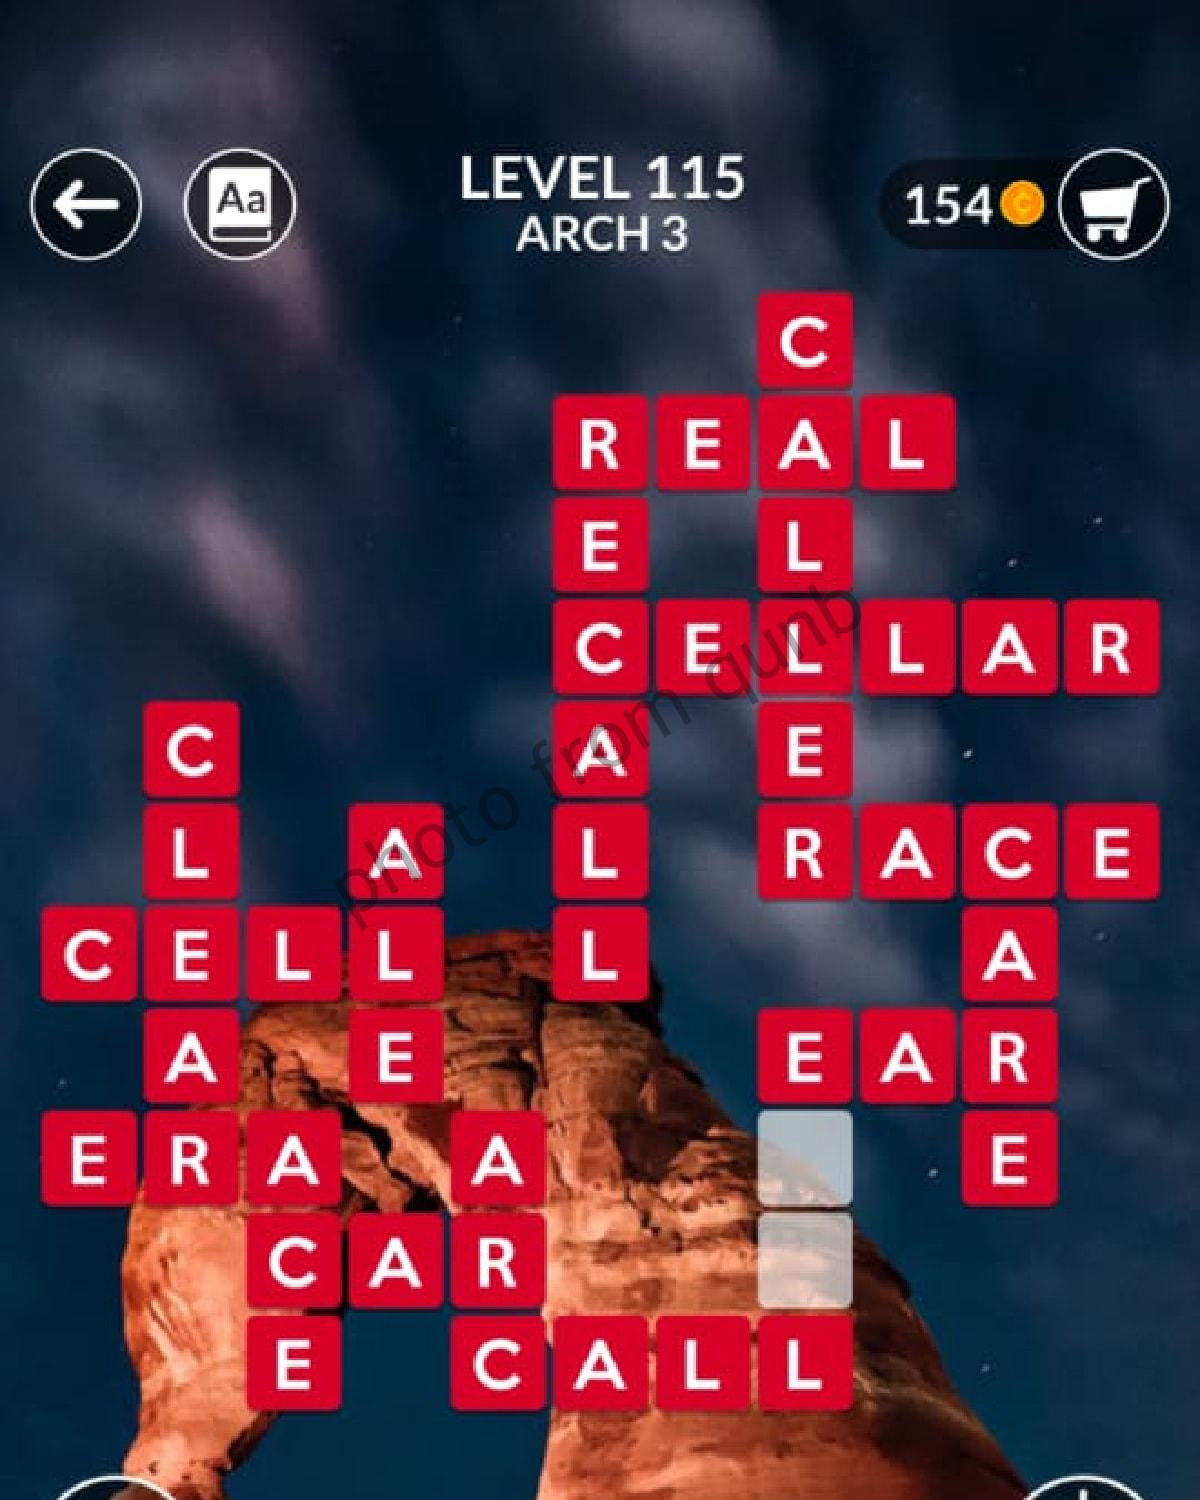 Wordscapes Level 115 Arch 3 Answers Qunb